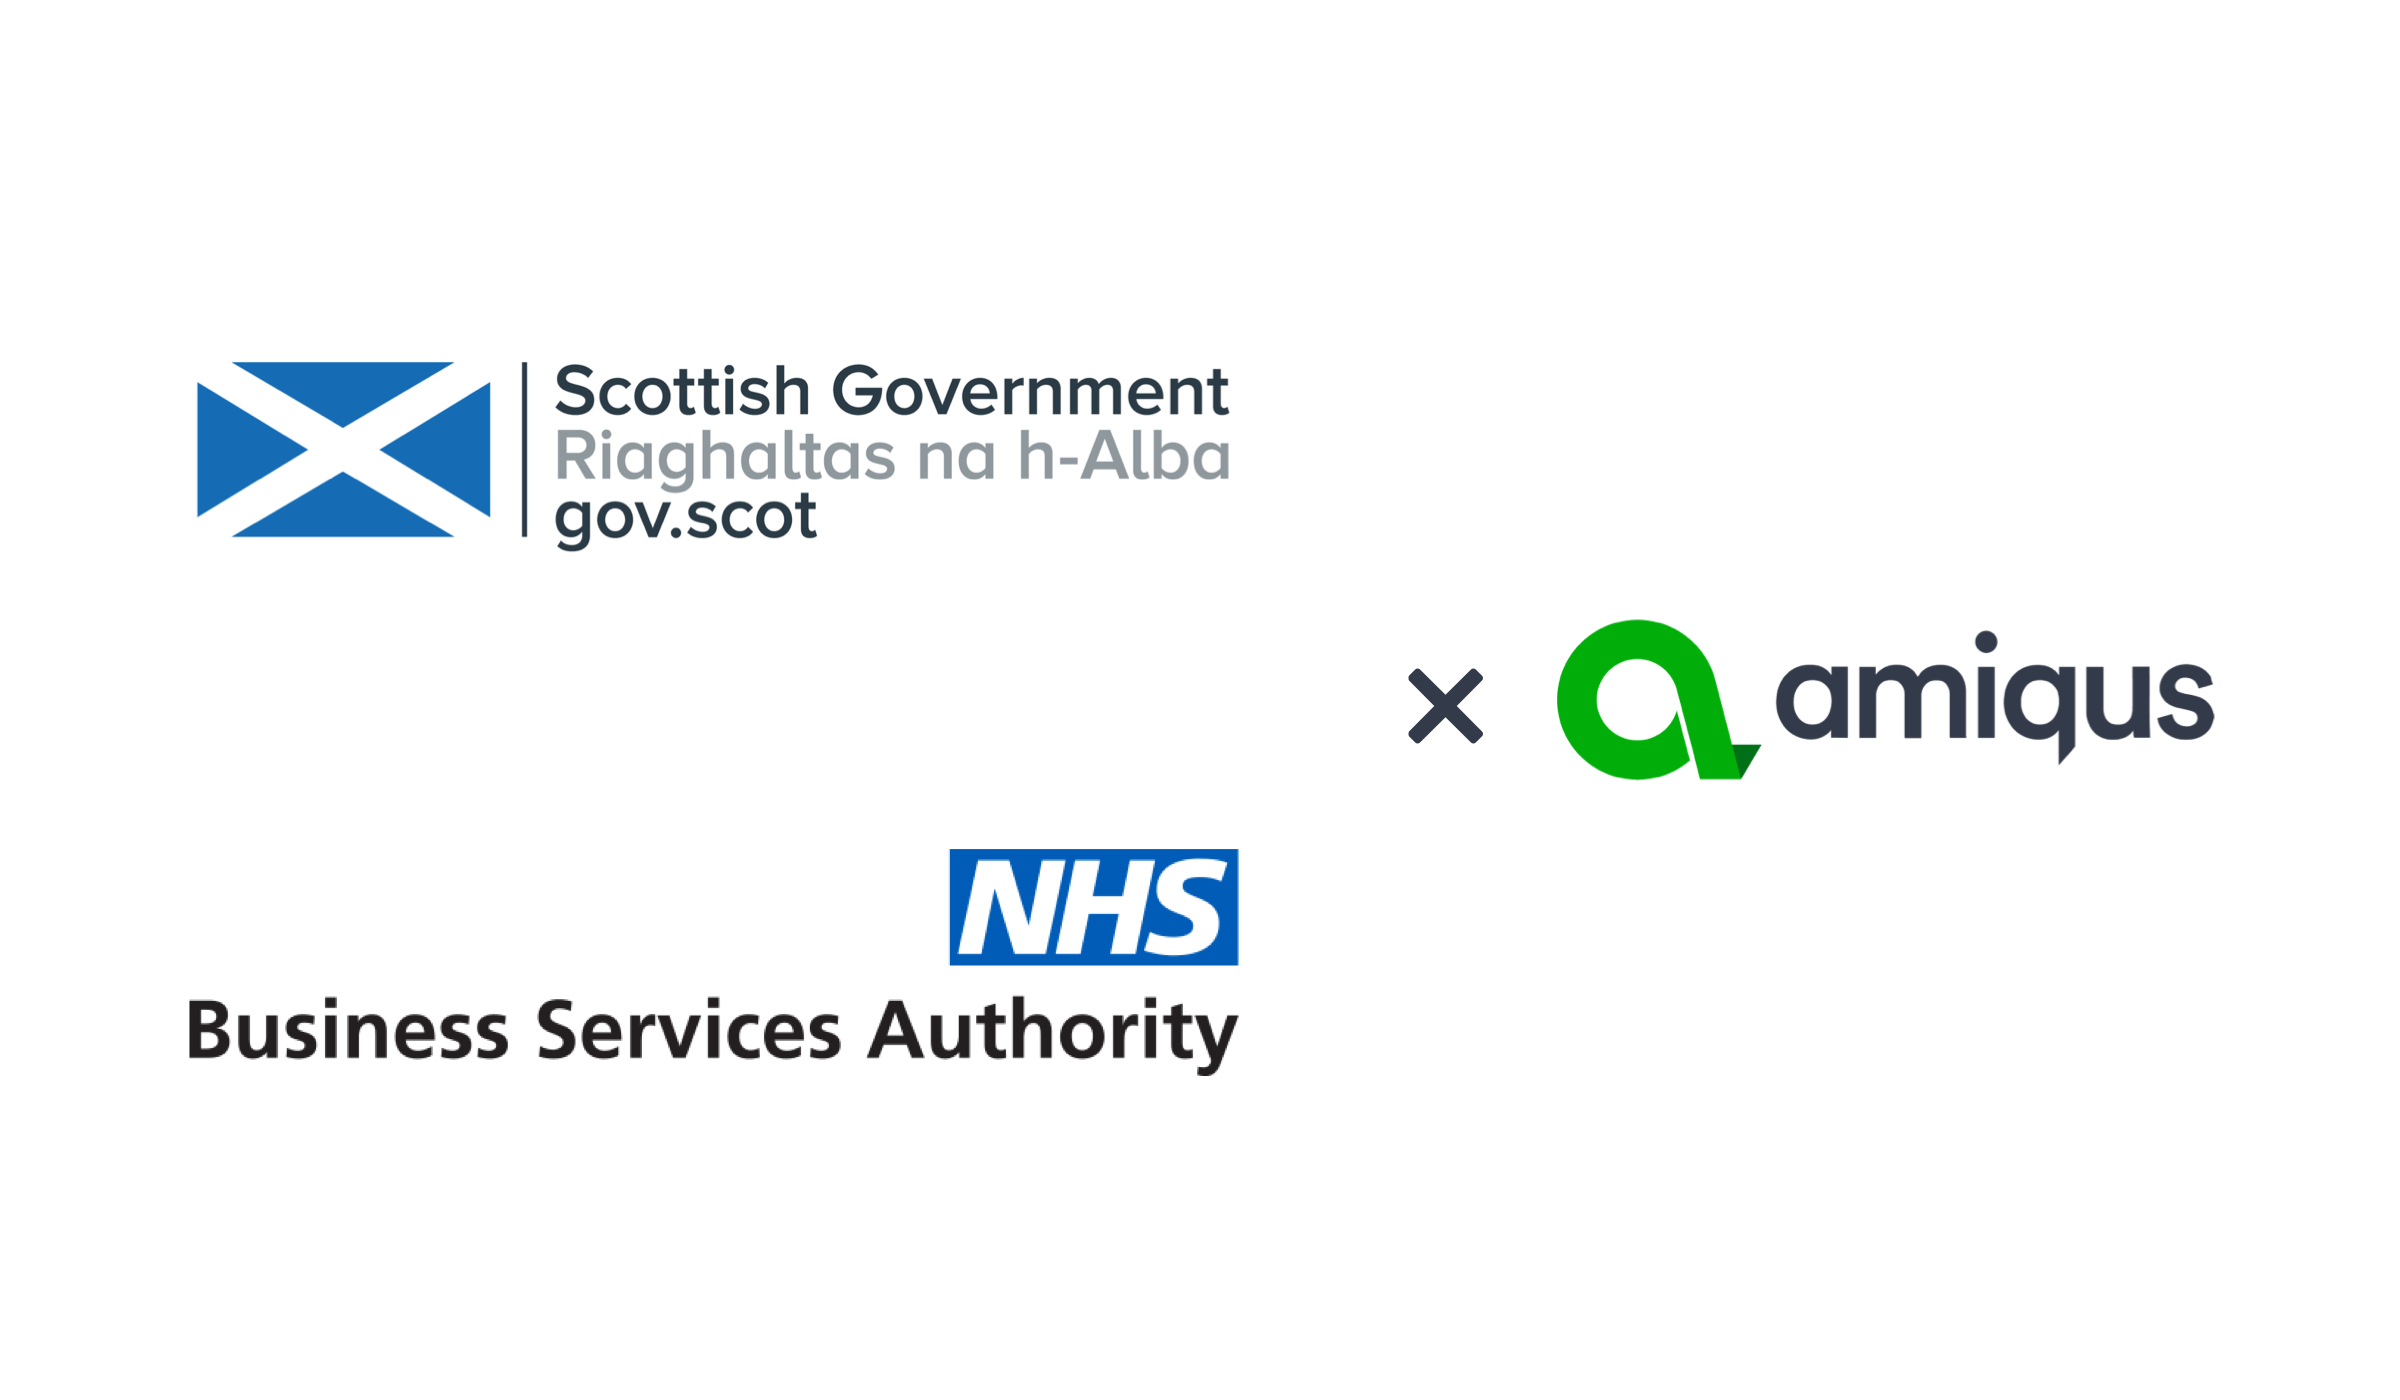 Logos of Amiqus, Scottish Government and NHSBSA